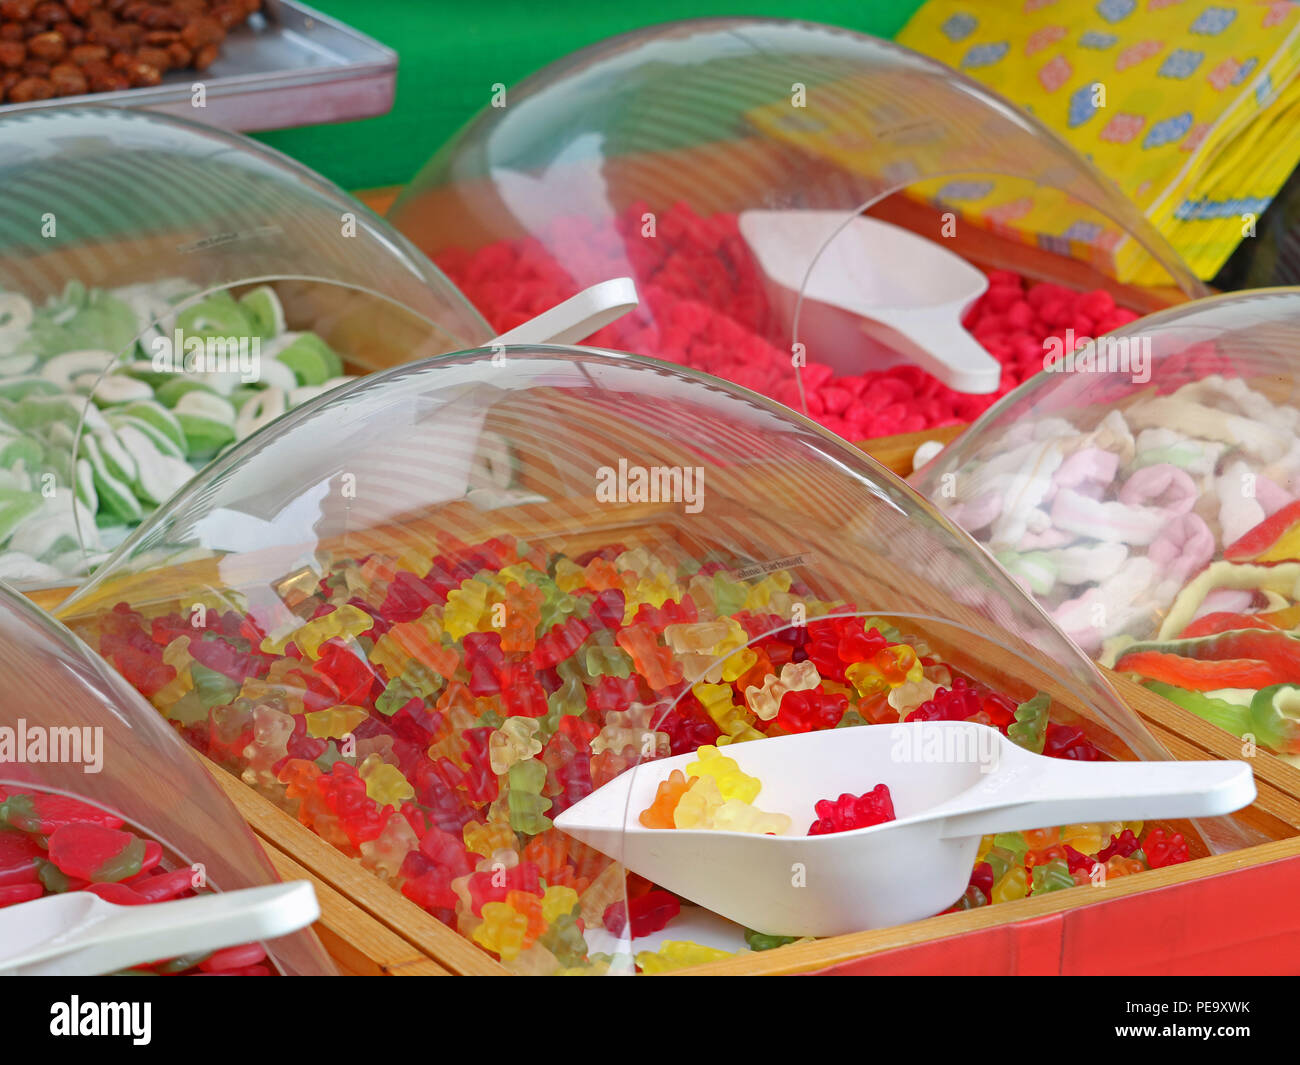 Close up of colorful gummy sweets bears in market with white plastic scoops Stock Photo